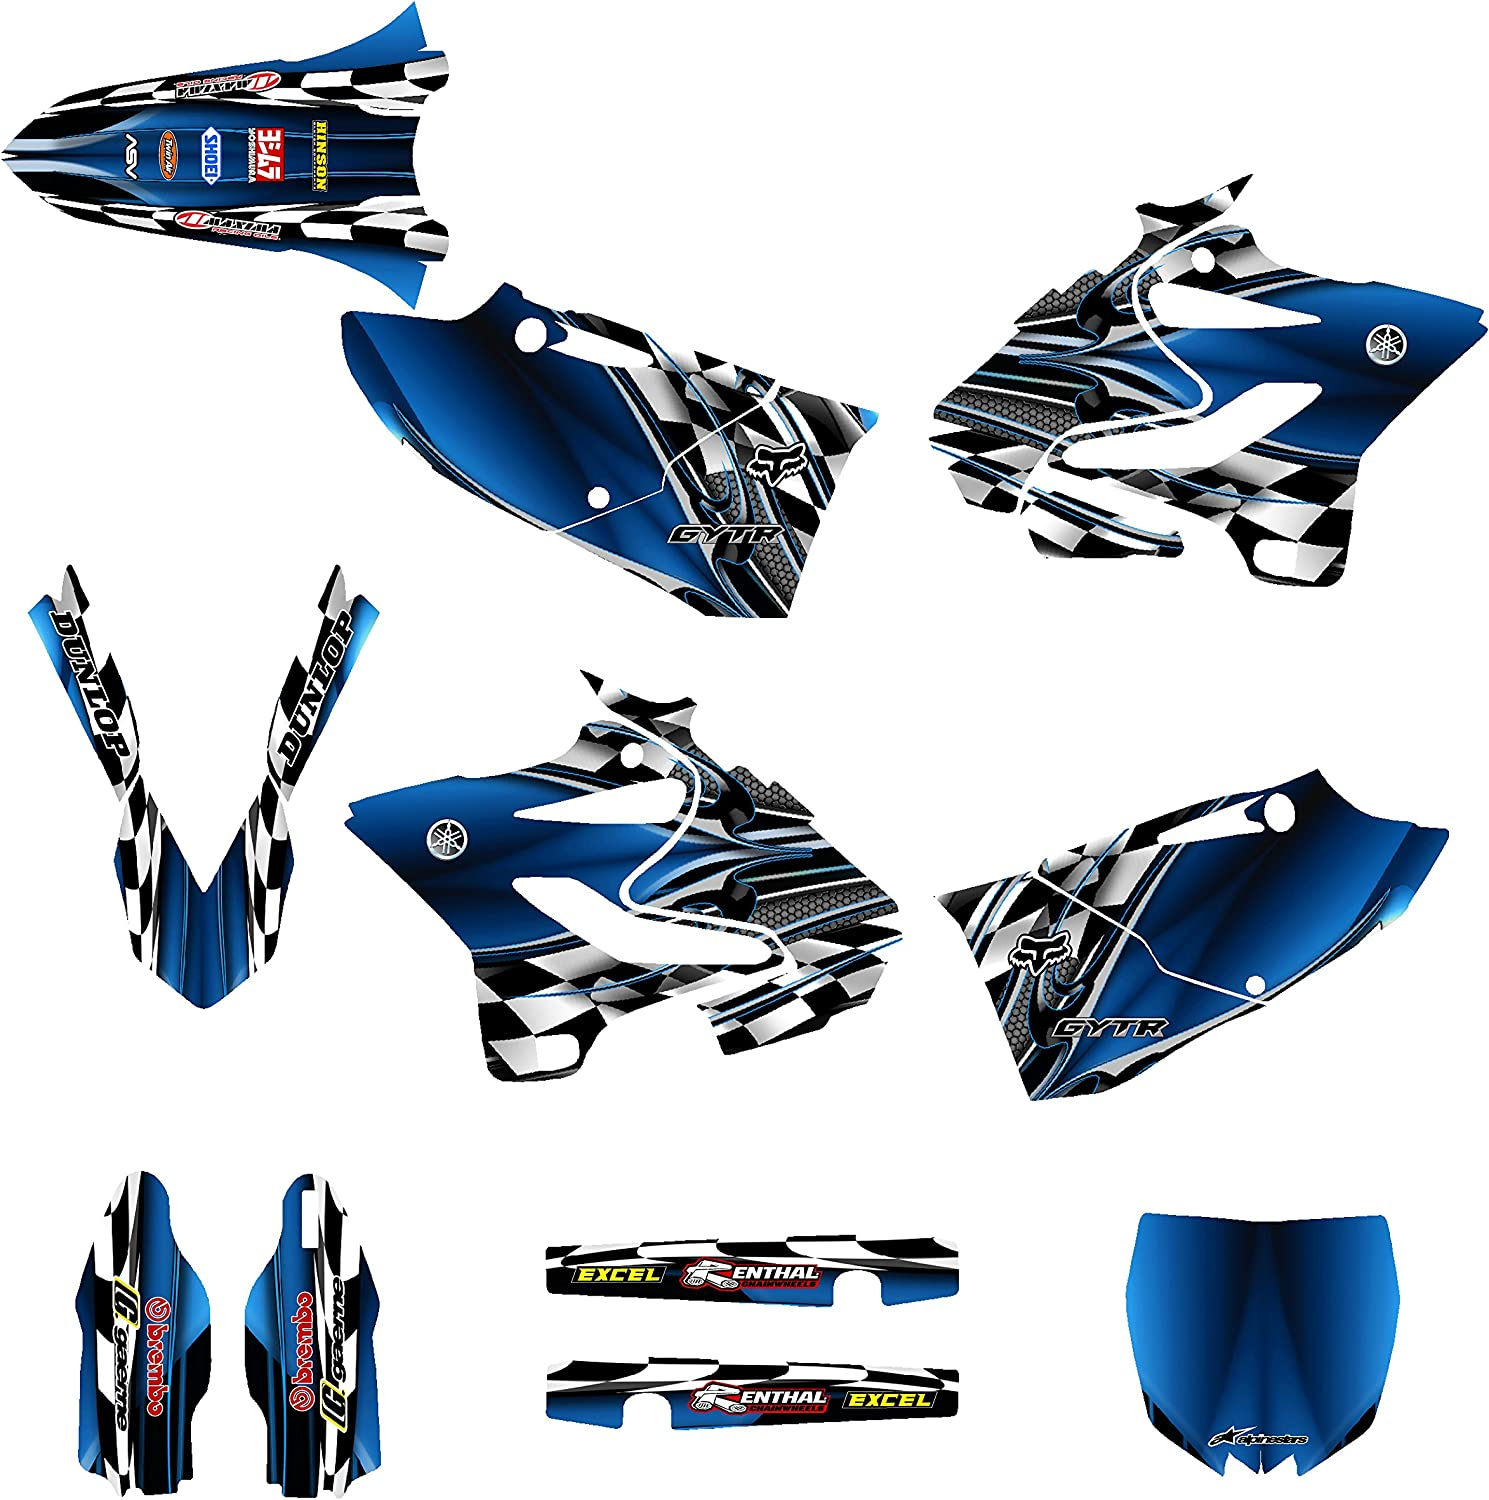 Yamaha YZ125 YZ250 2015 Dirt Bike Graphics Decal Kit By Allmotorgraphics No2500 Blue